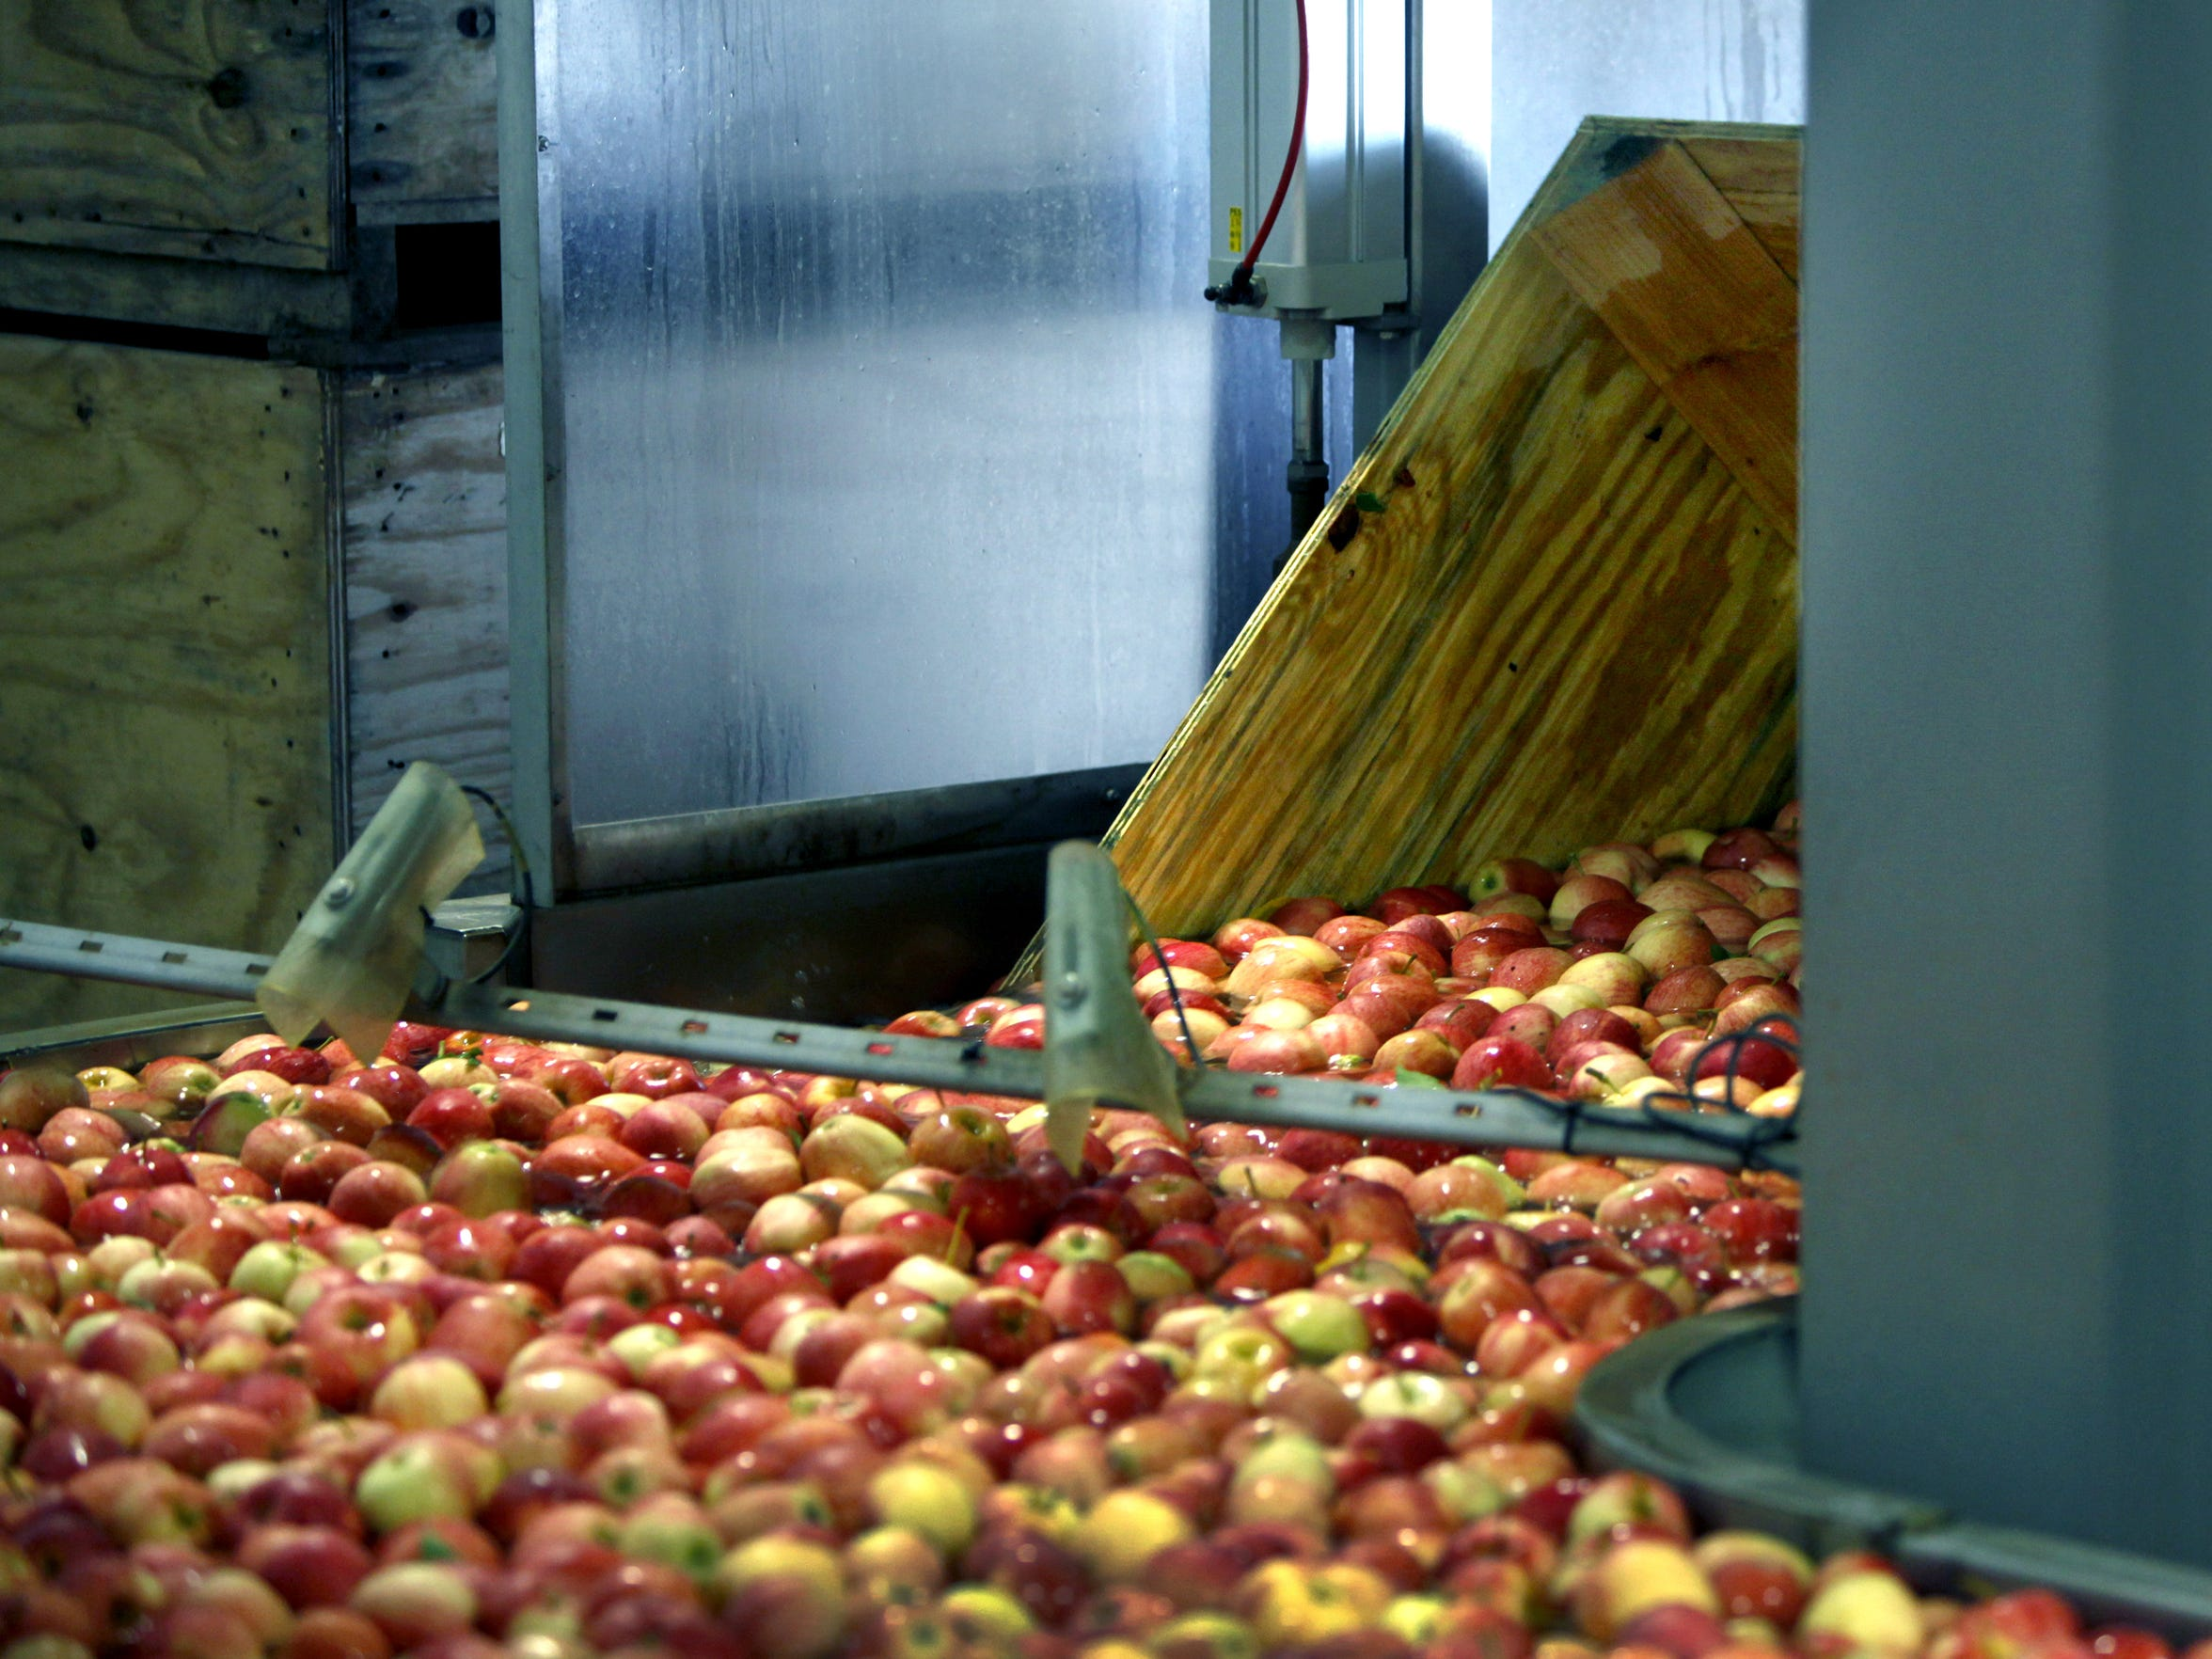 Bins containing Gala apples at Empire Fruit Growers